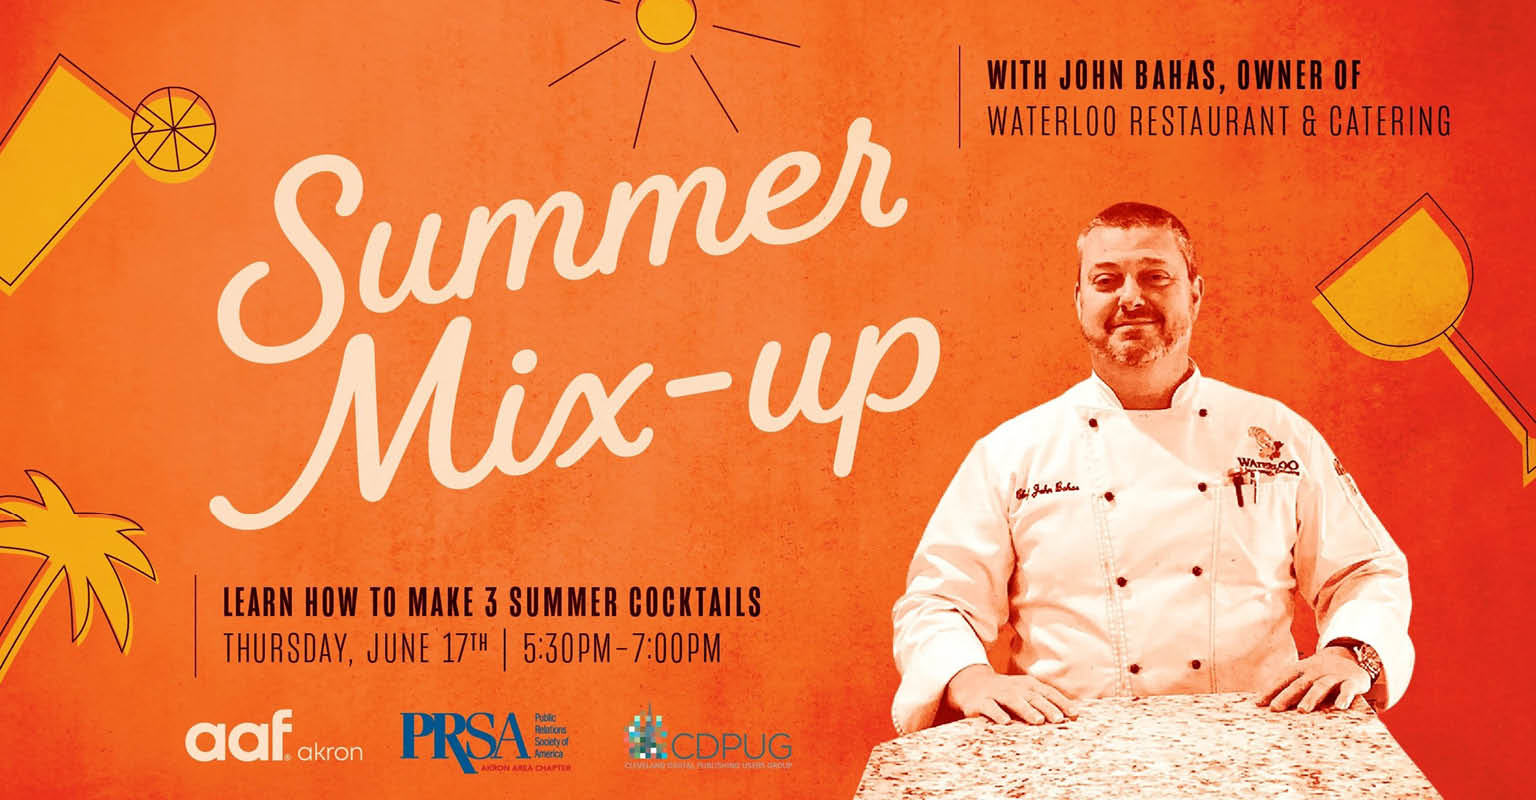 Summer Mix-Up with owner John Bahas, Waterloo Restaurant & Catering